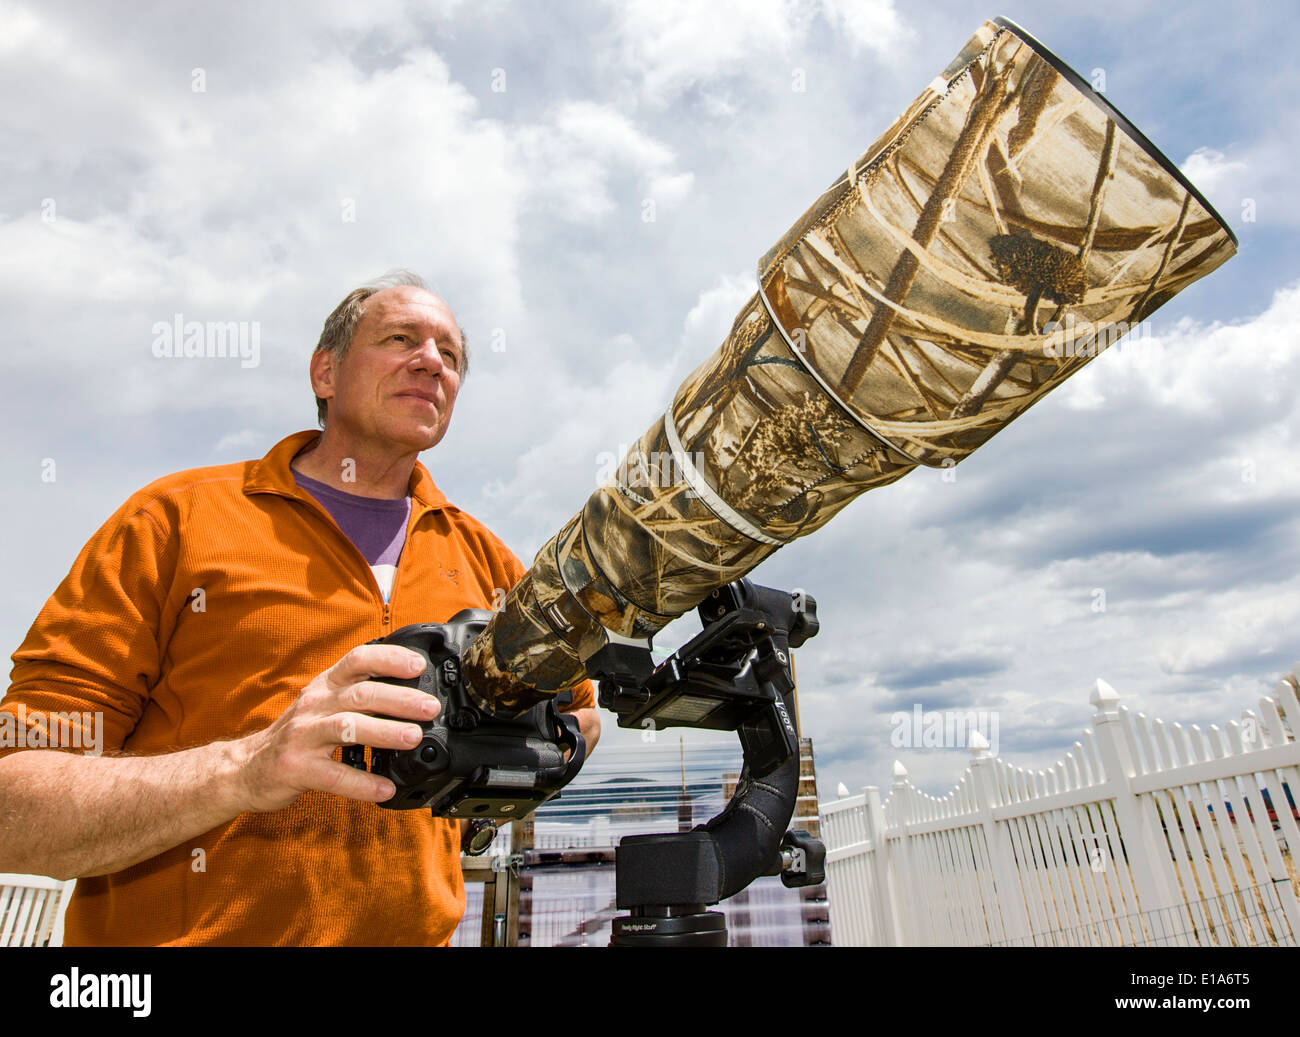 Wildlife photographer H. Mark Weidman working with a large telephoto lens - Stock Image